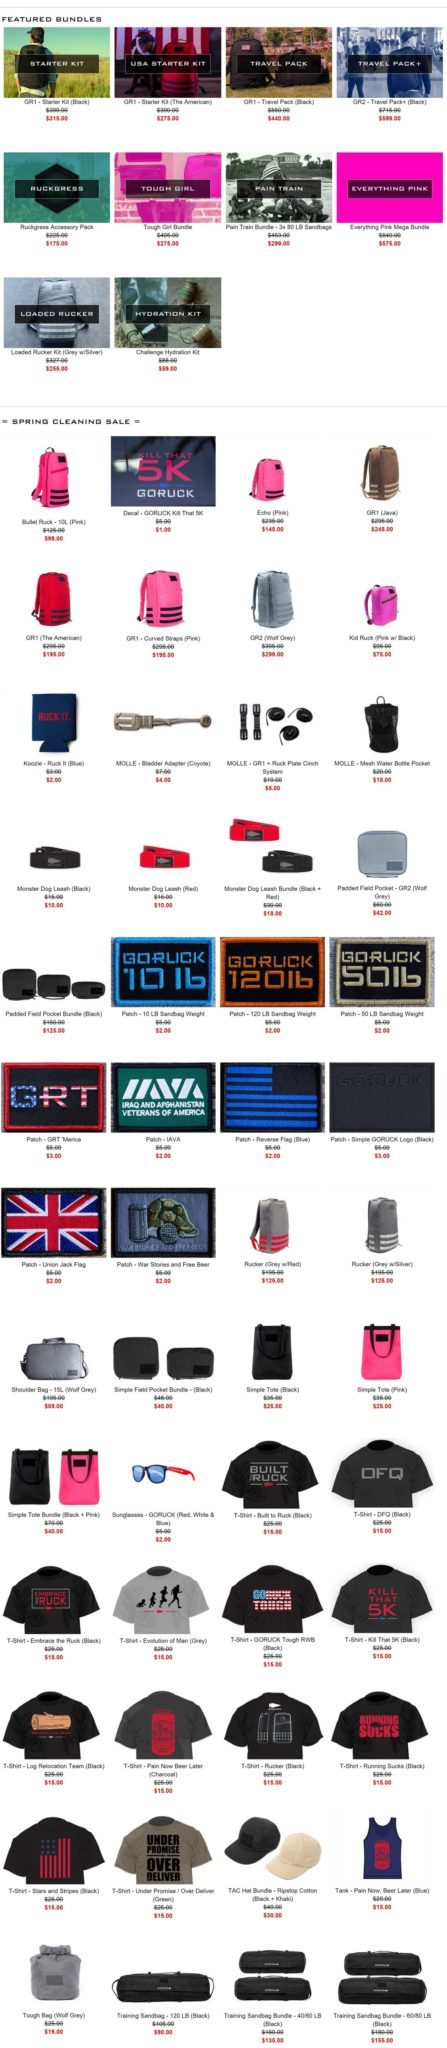 goruck-spring-cleaning-sale-2016-full-page-no-sb